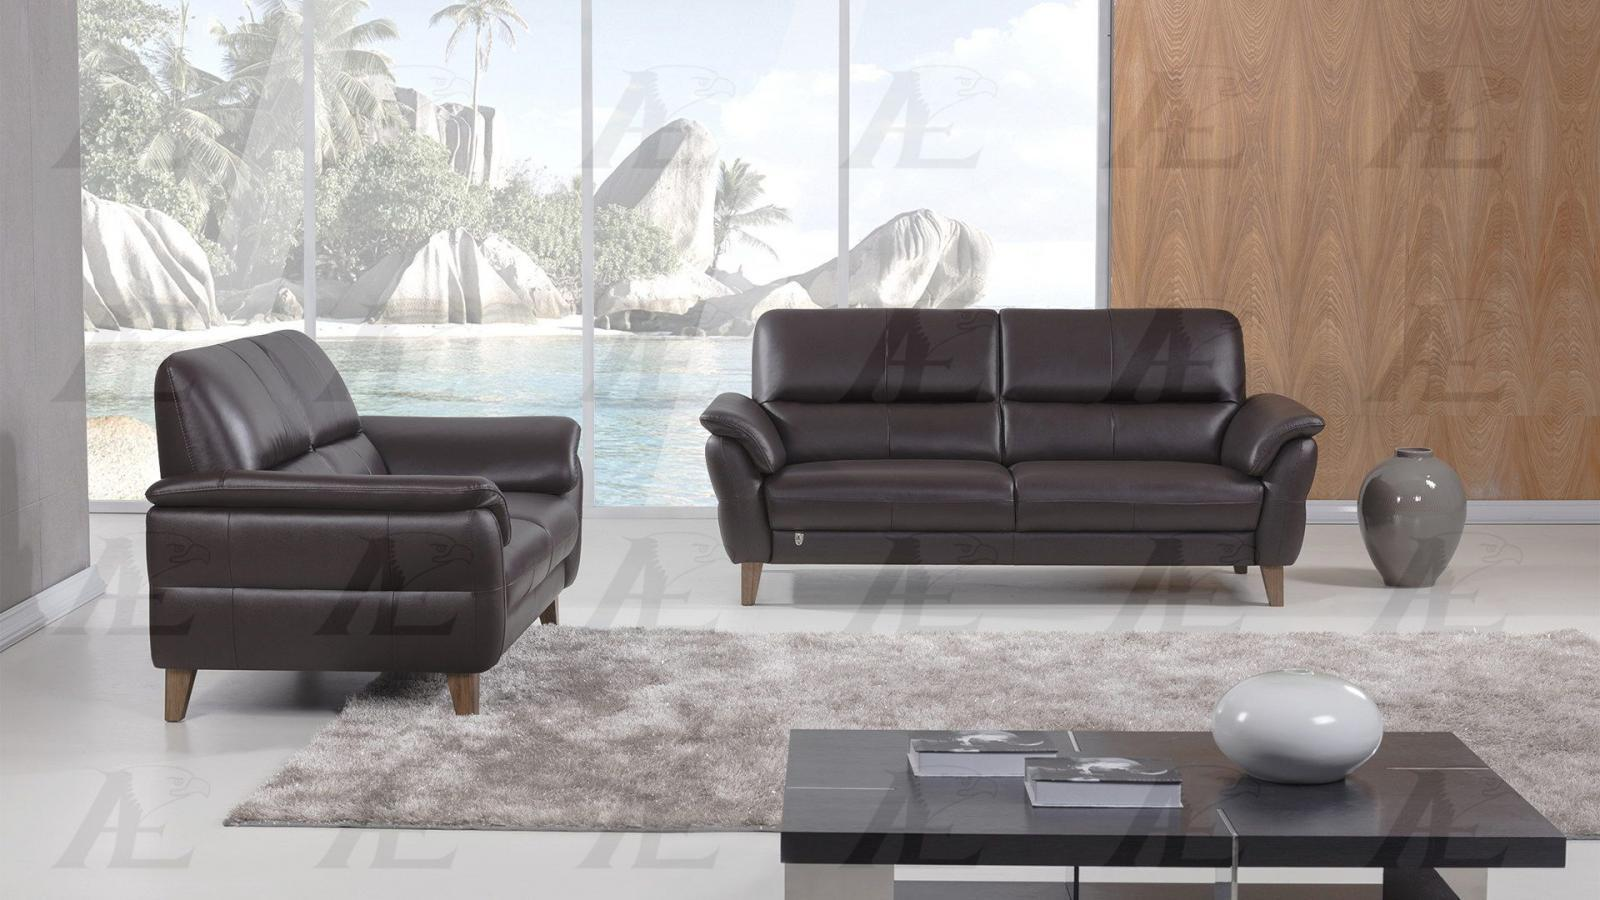 American Eagle EK073 Contemporary Dark Chocolate Italian Leather Sofa Set 2pcs